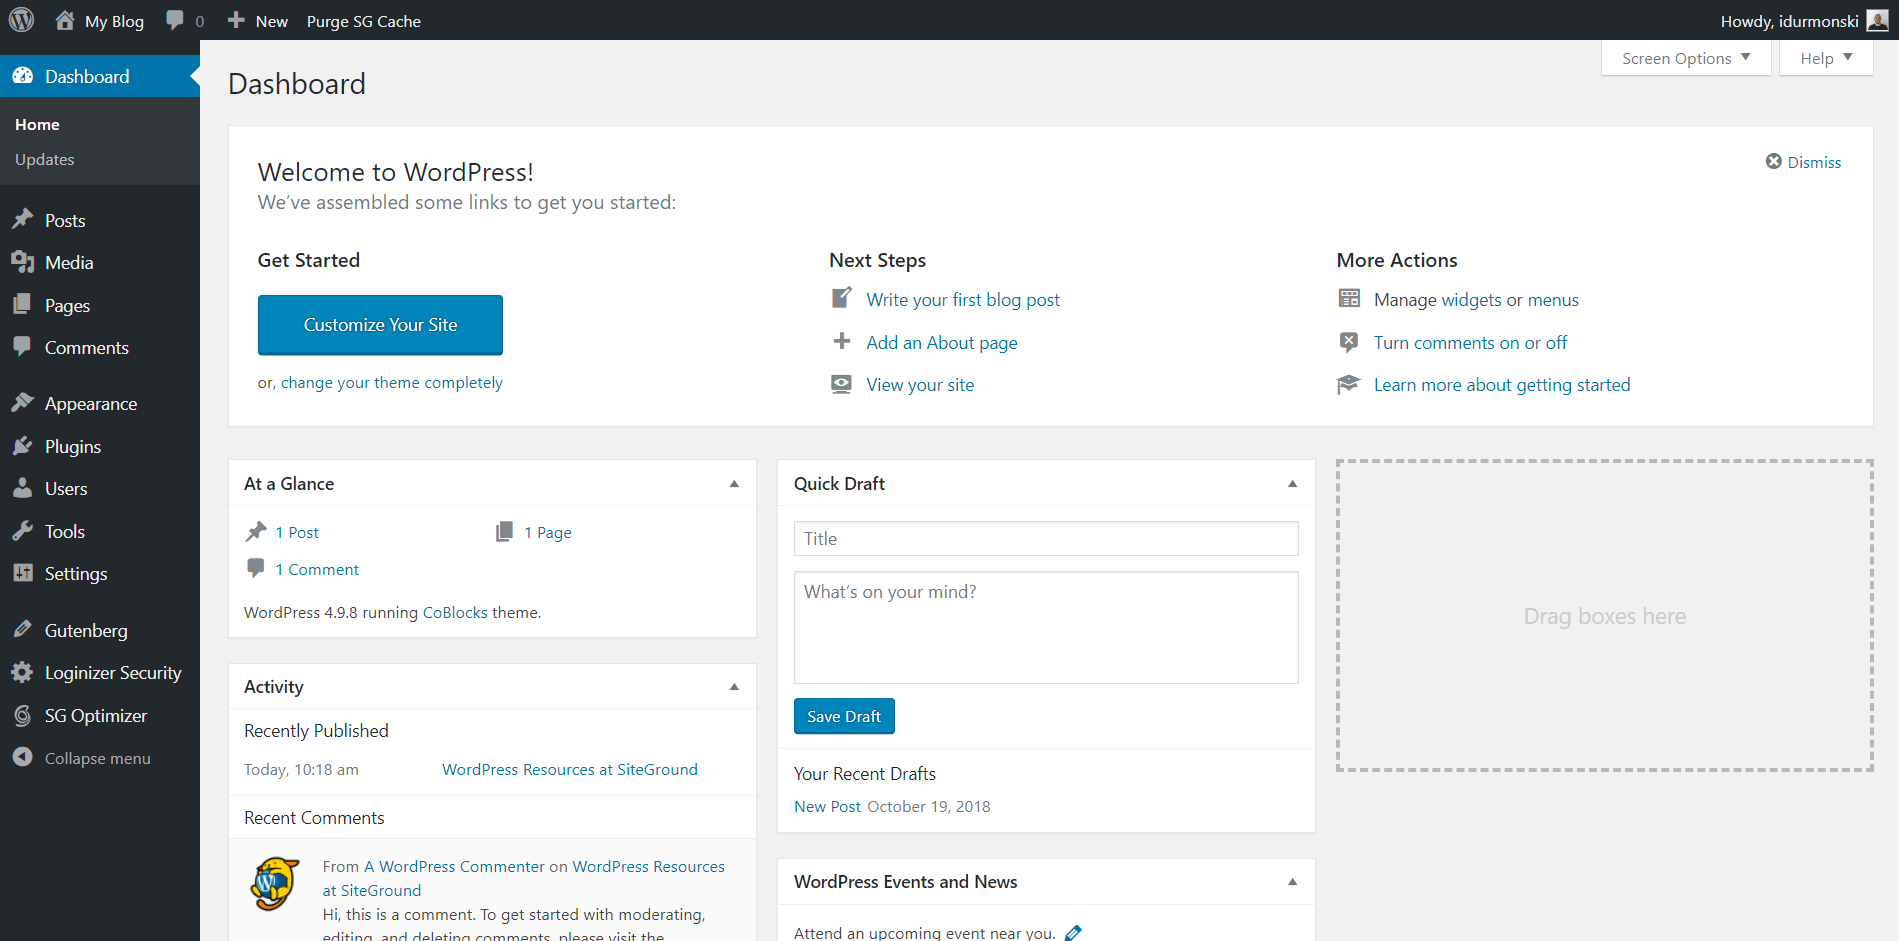 WordPress Dashboard Explained